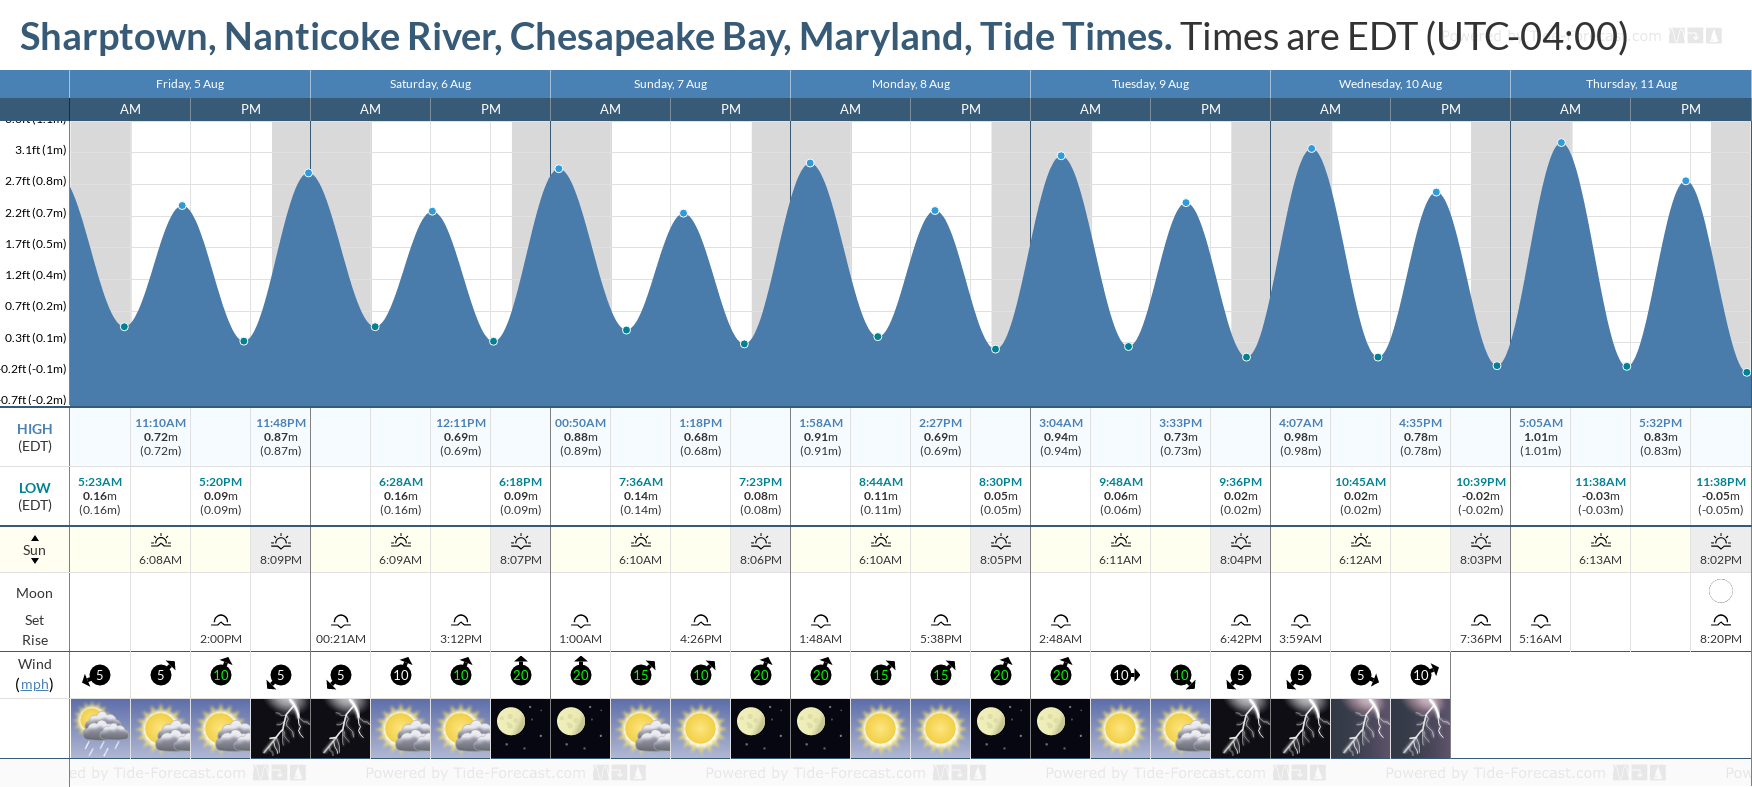 Sharptown, Nanticoke River, Chesapeake Bay, Maryland Tide Chart including high and low tide tide times for the next 7 days